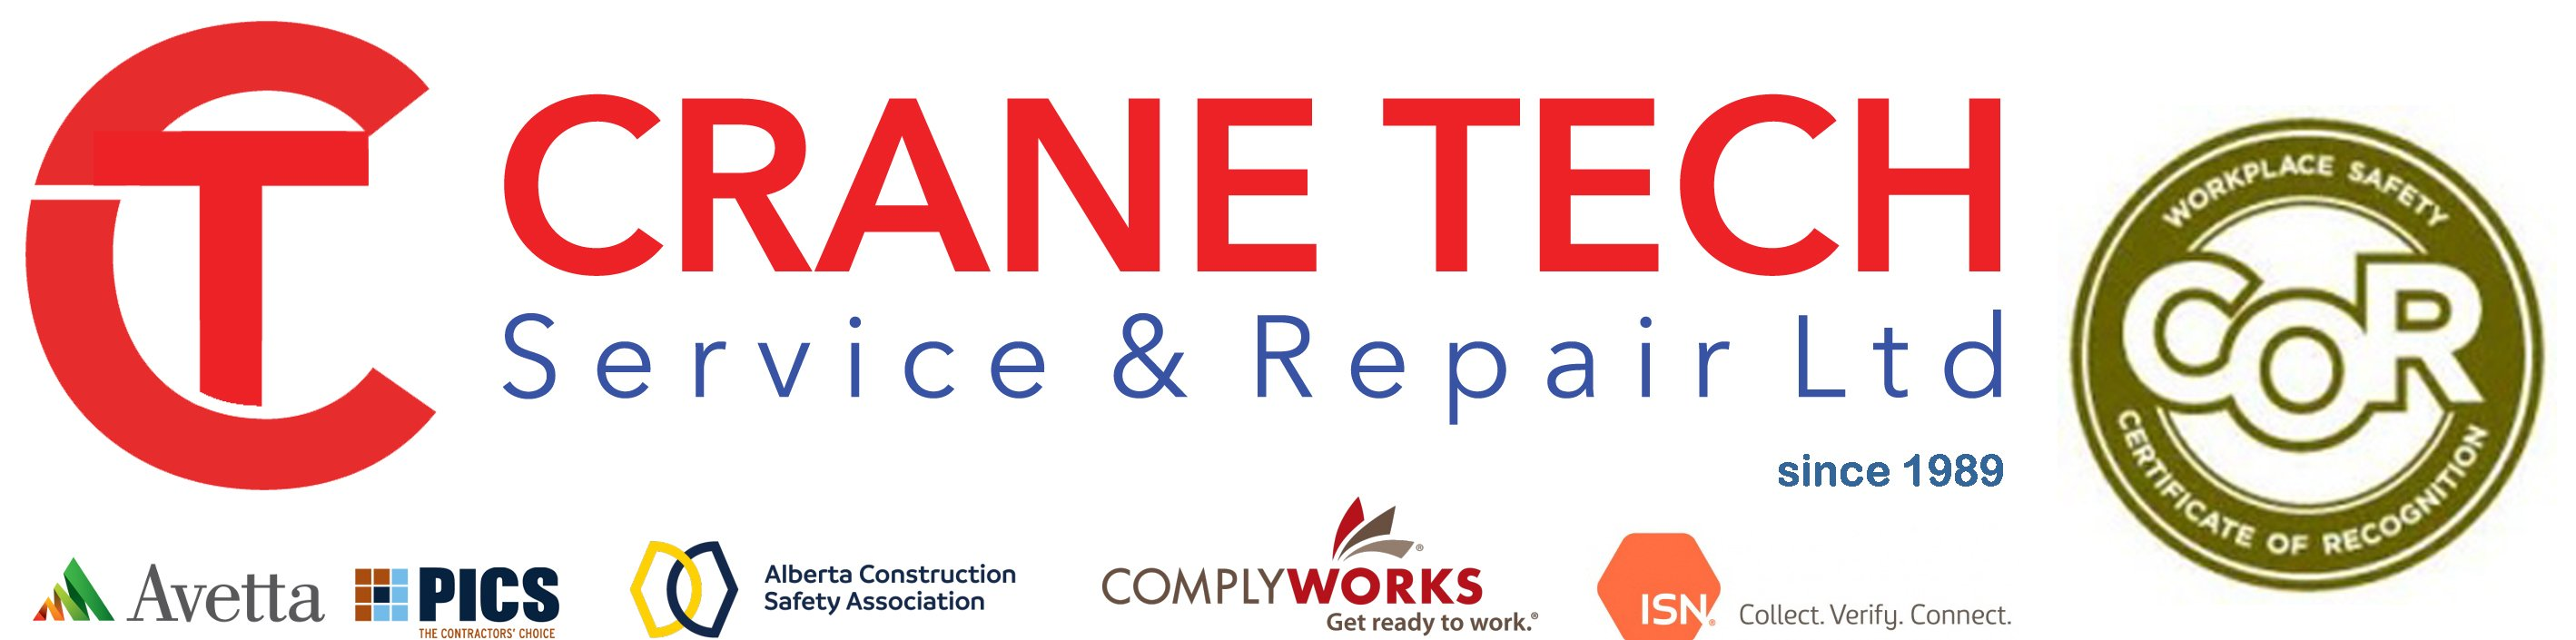 Crane Tech Service & Repair Ltd